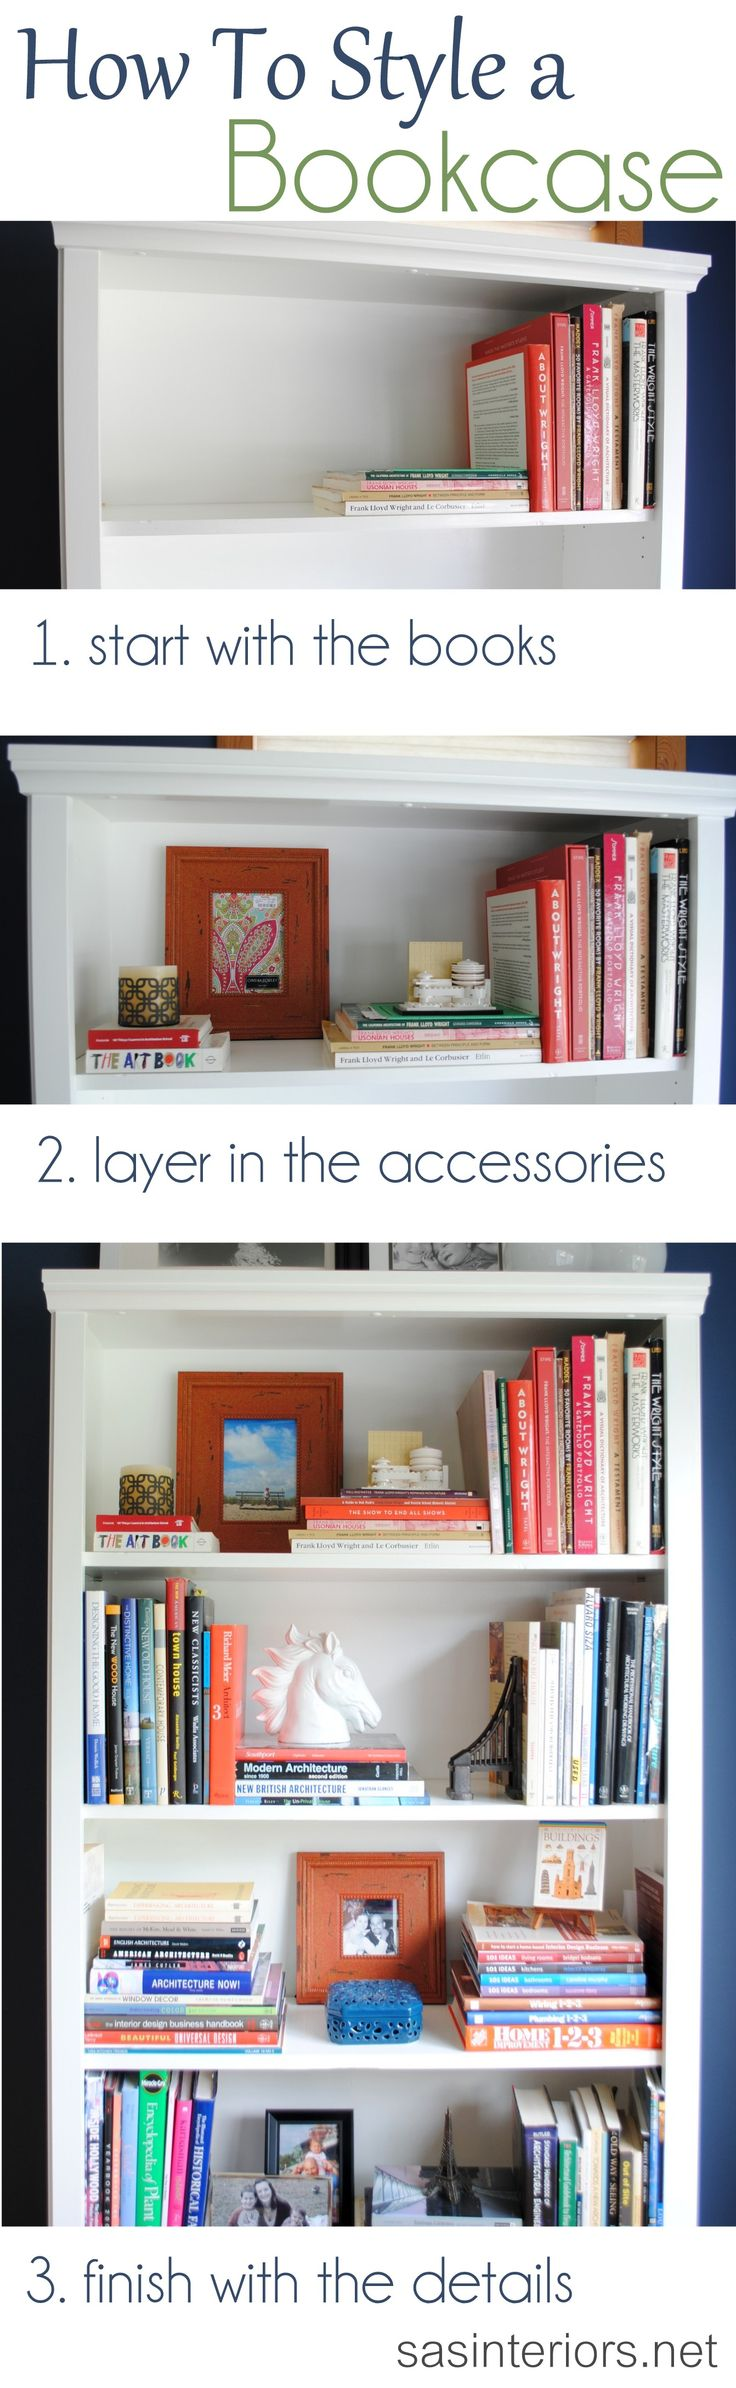 accessorizing a bookcase or shelf in your home.